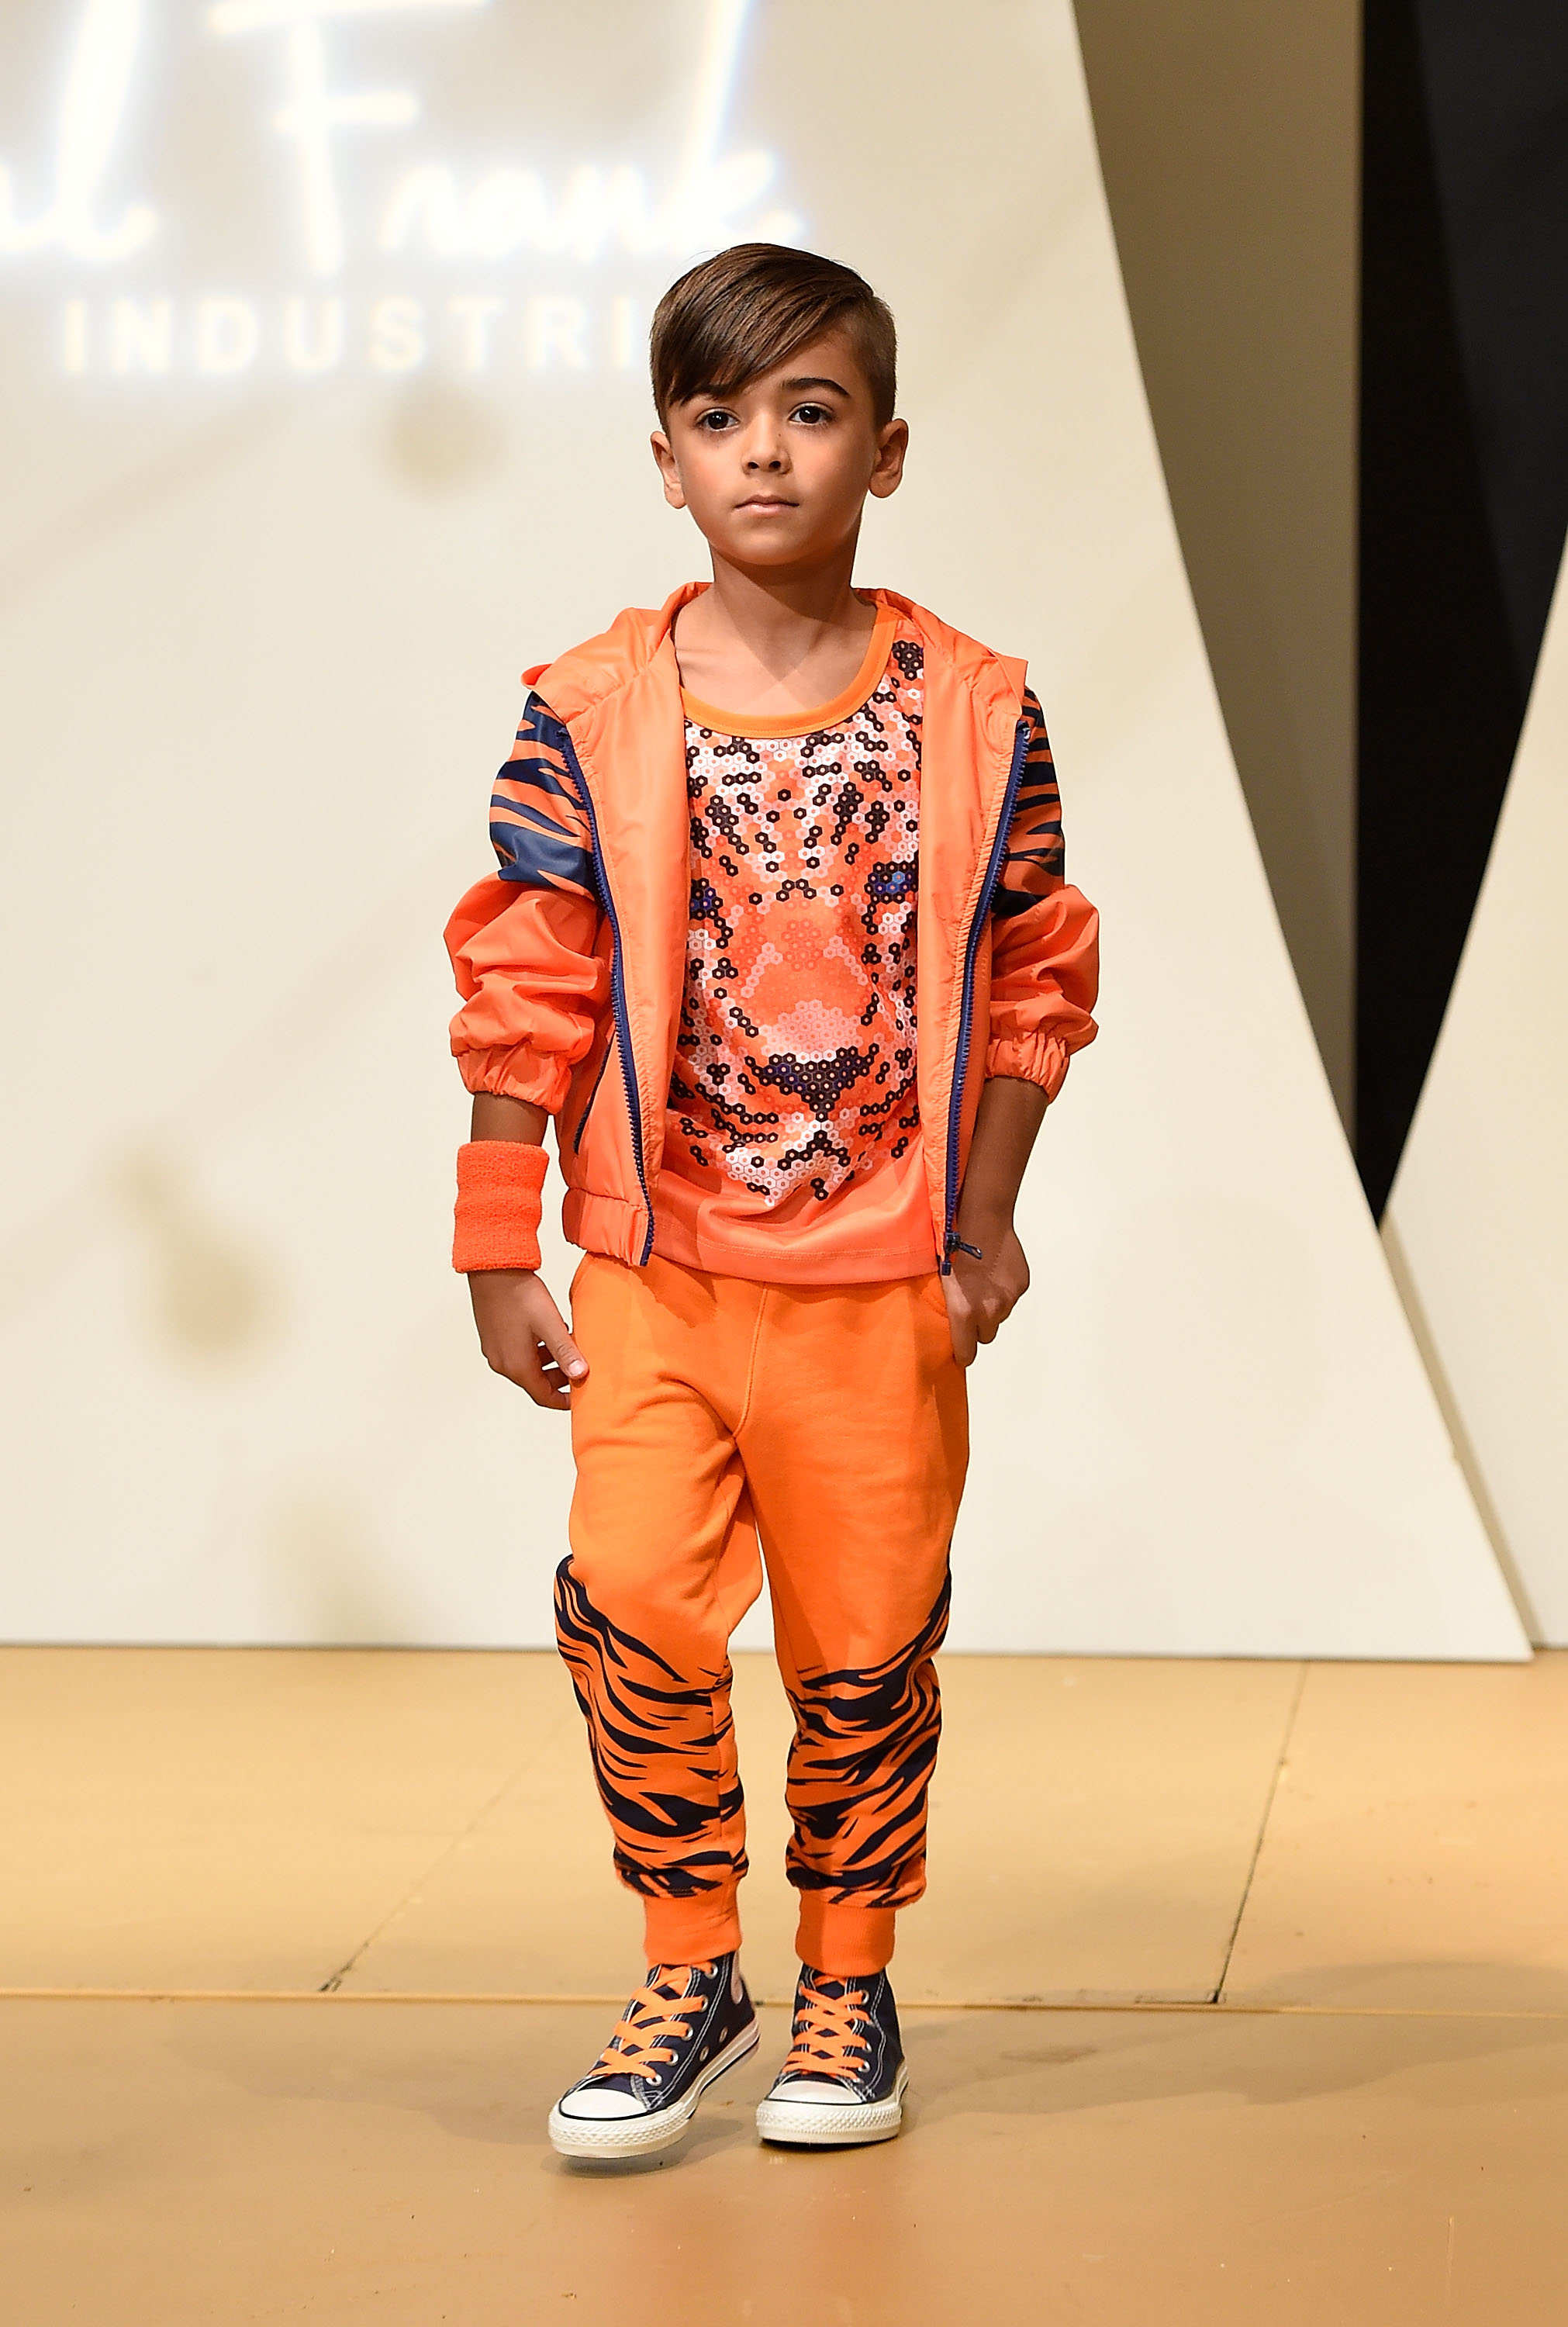 Paul Frank Industries Debuts Children's Spring/Summer 2016 Collection At New York Fashion Week